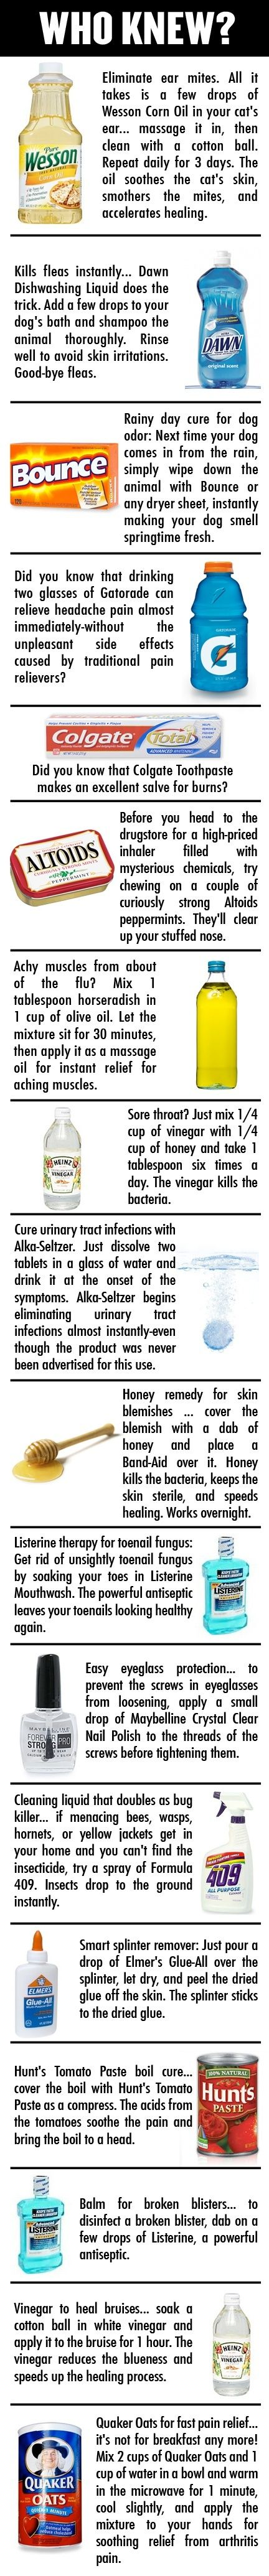 Who Knew? At home remedies from household products